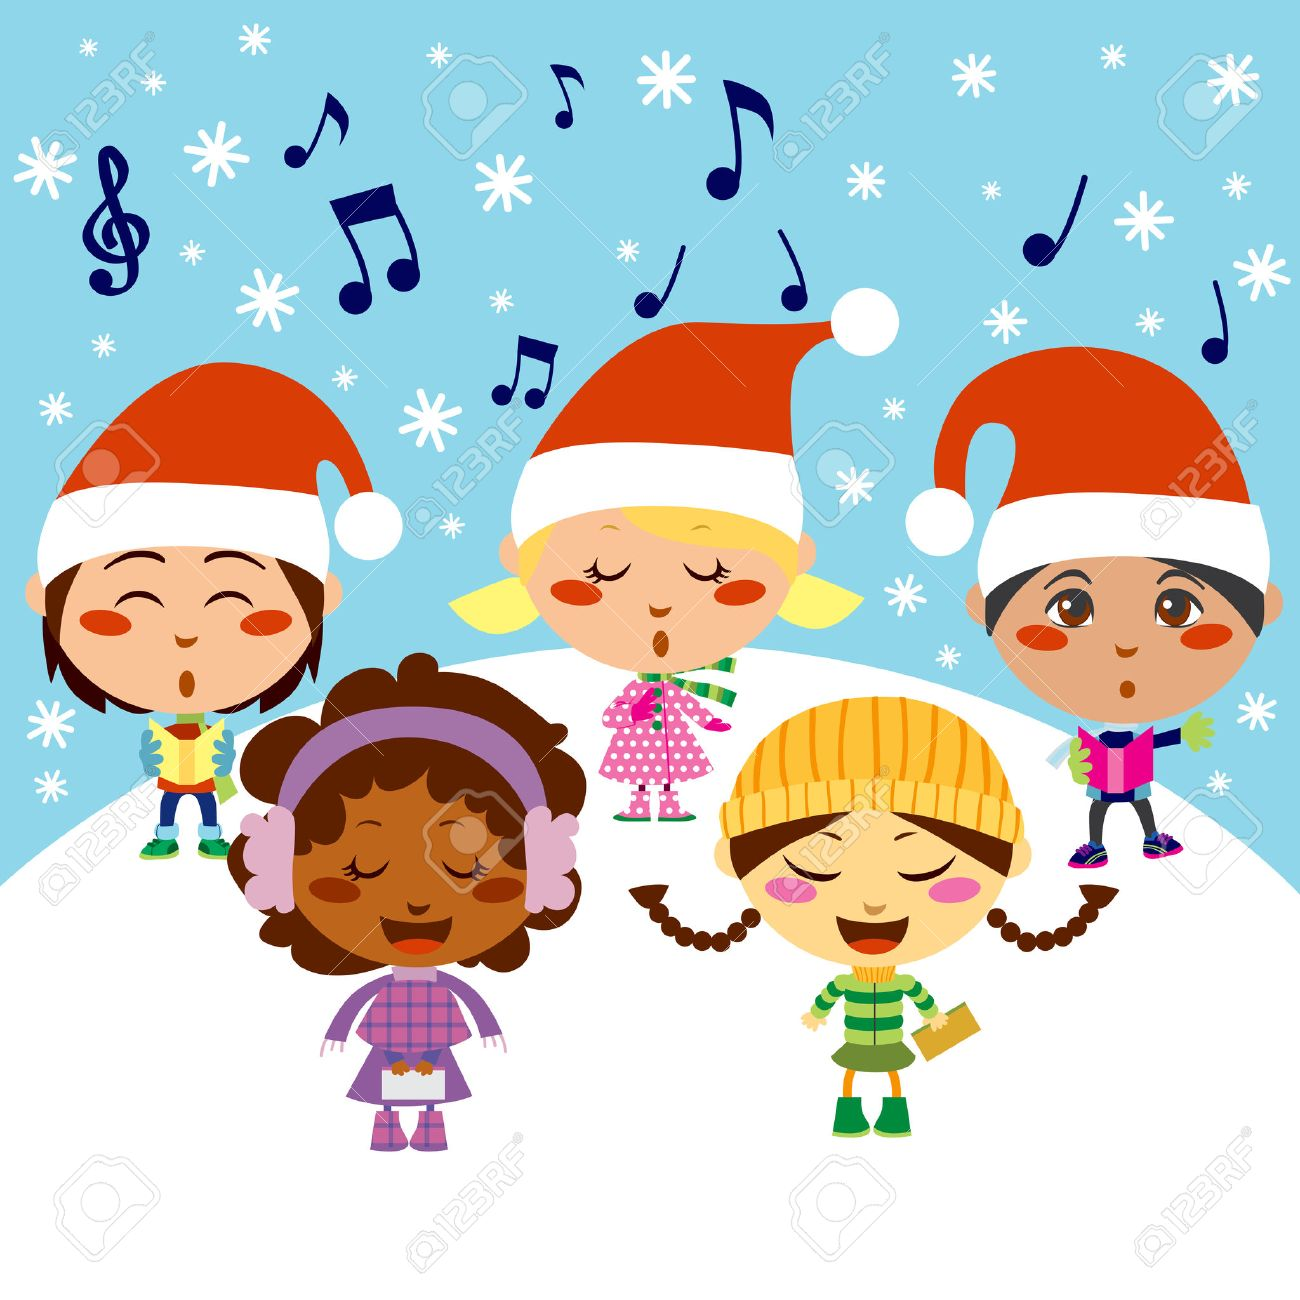 Five Kids Singing Christmas Carols While Snow Falls Royalty Free ...